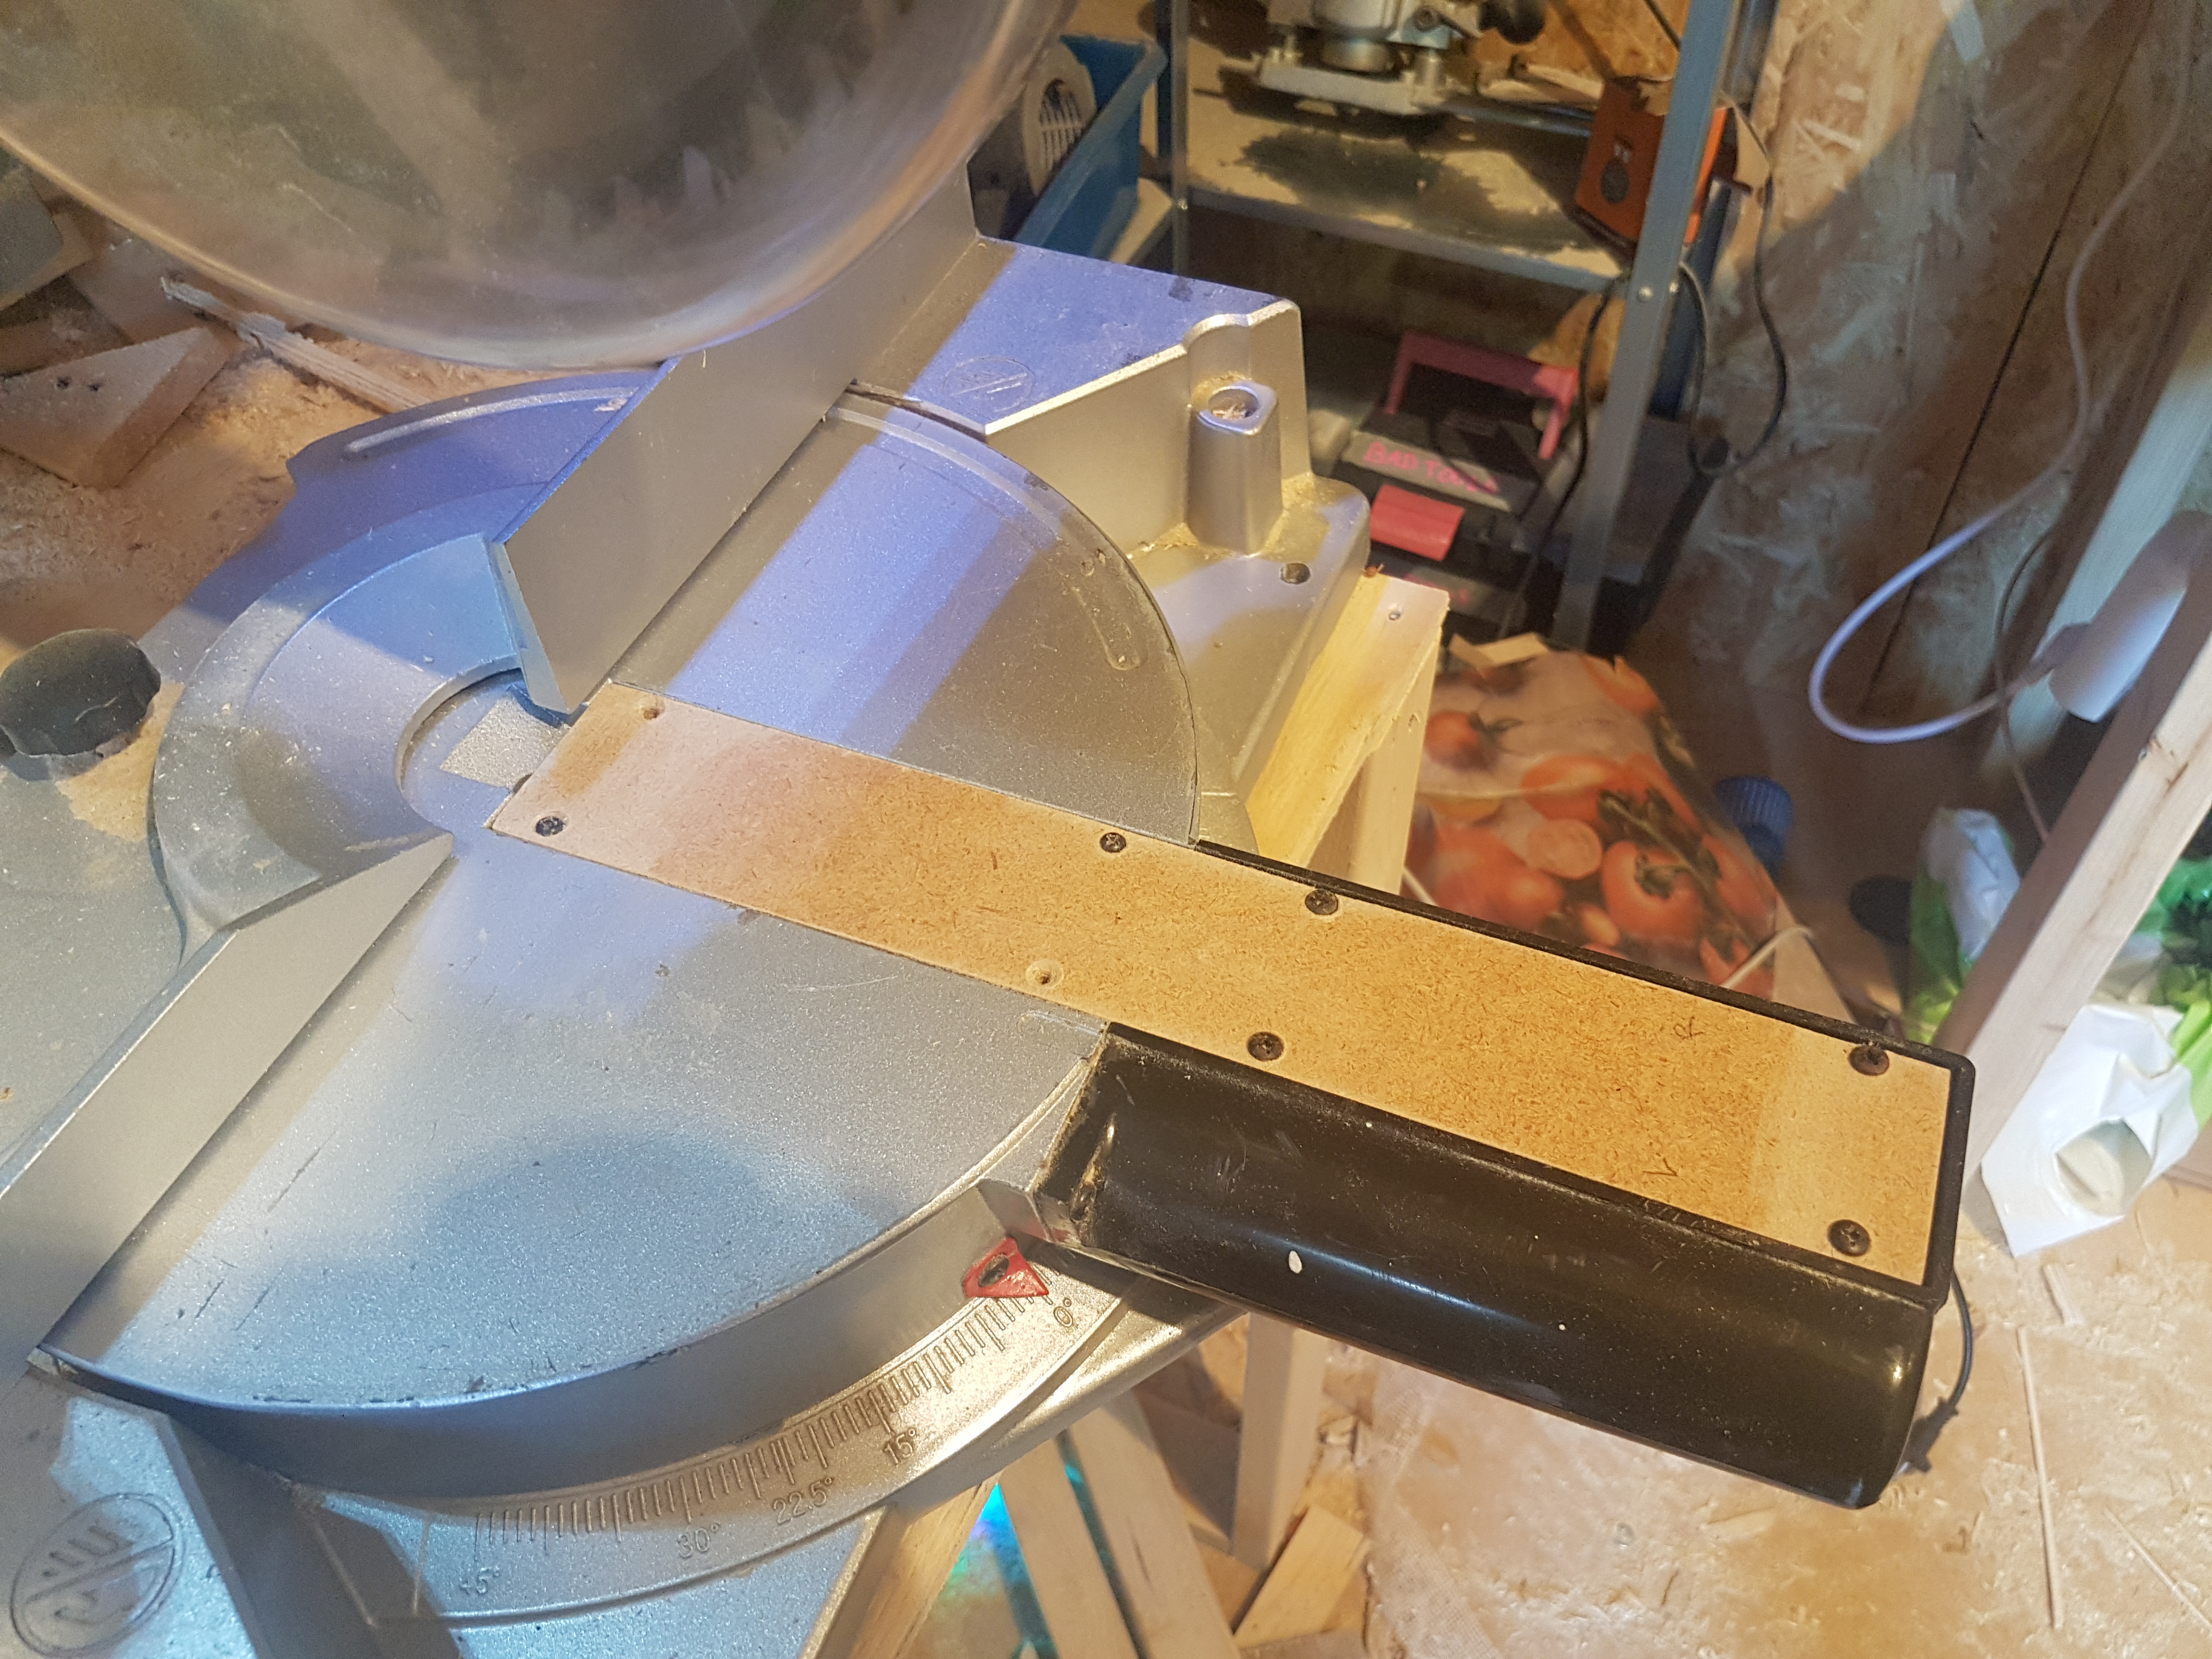 Picture of The Insert in Place